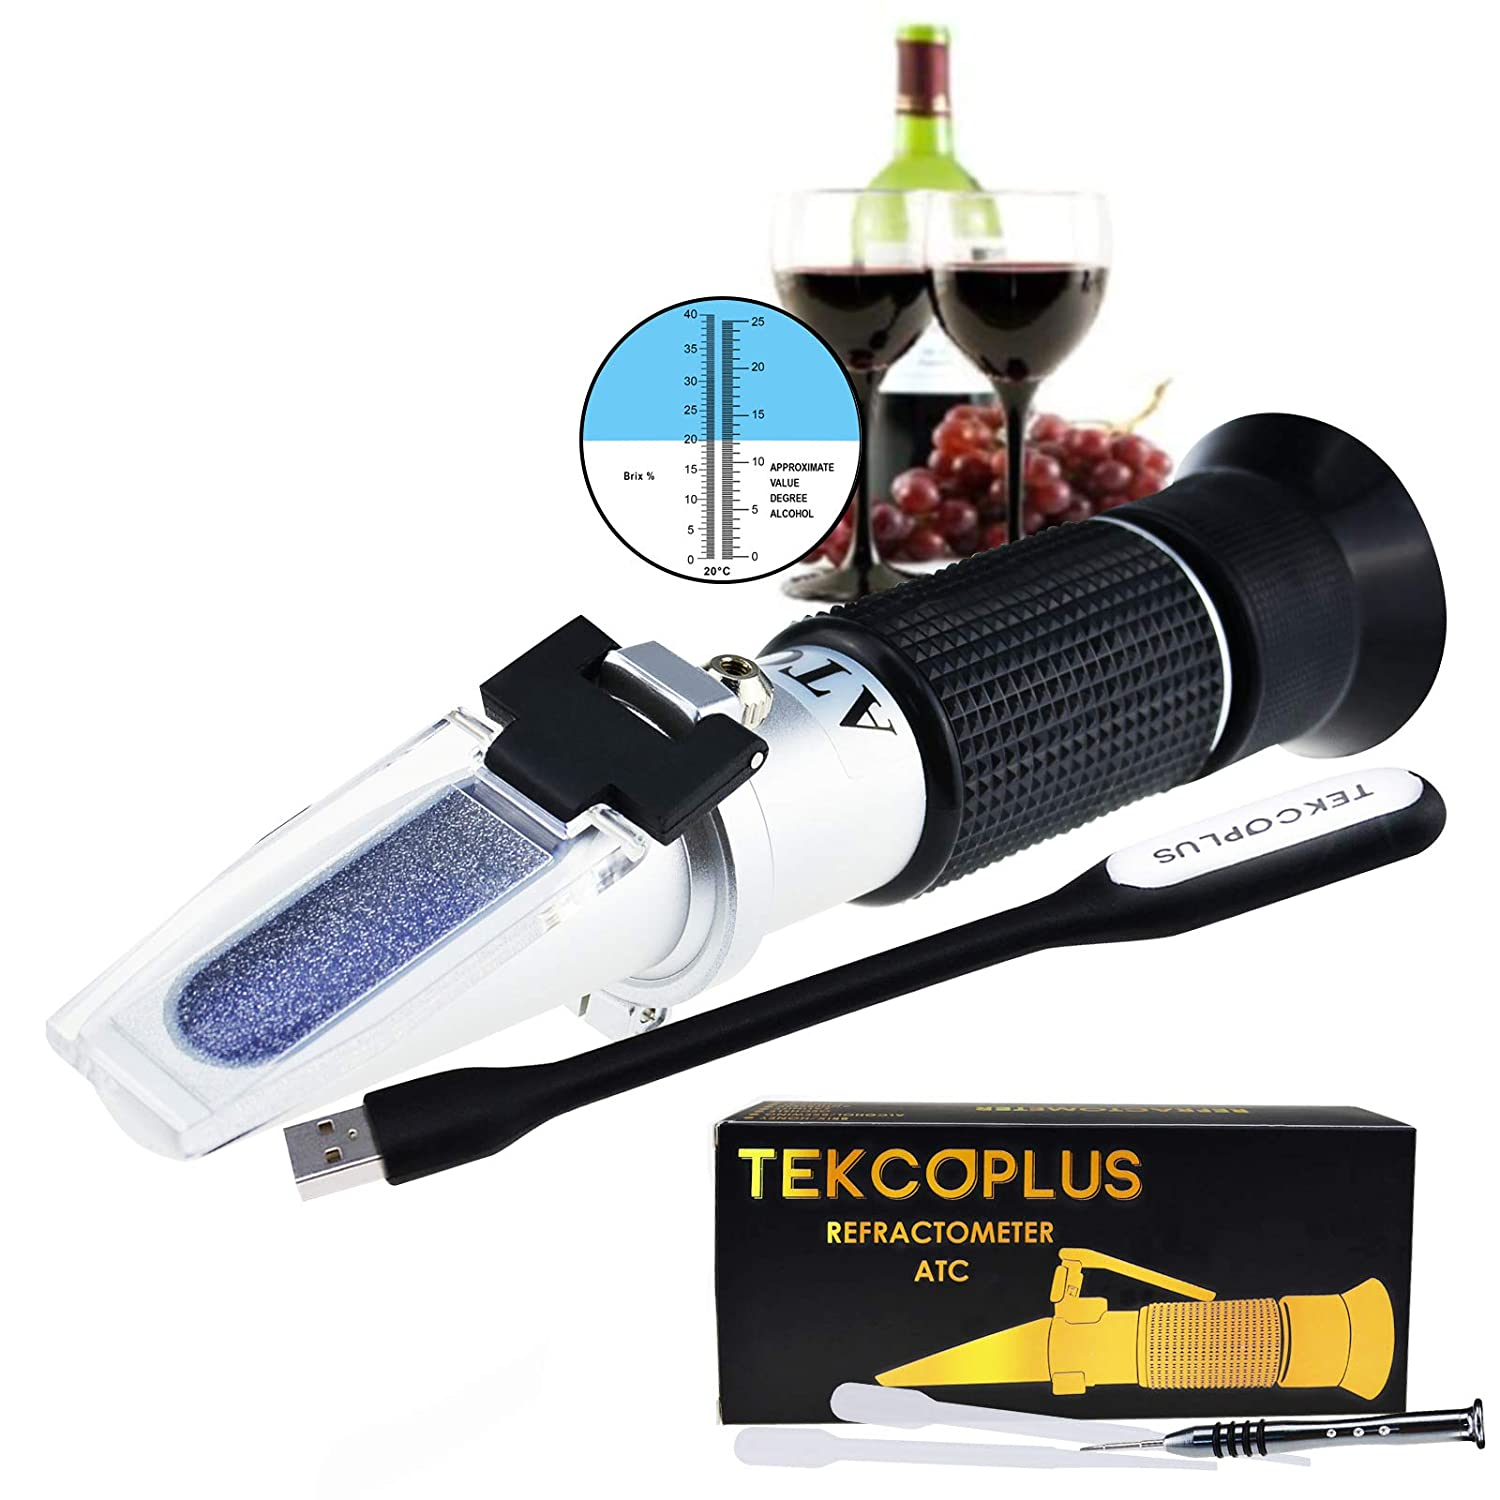 Hand Held Dual Scale Alcohol 0-25/% Brix Wine Alcohol Refractometer 0-40/% with ATC for Winemakers Homebrew Tool to Measure the Sugar Content in Original Grape Juice and Alcohol Content of the Wine